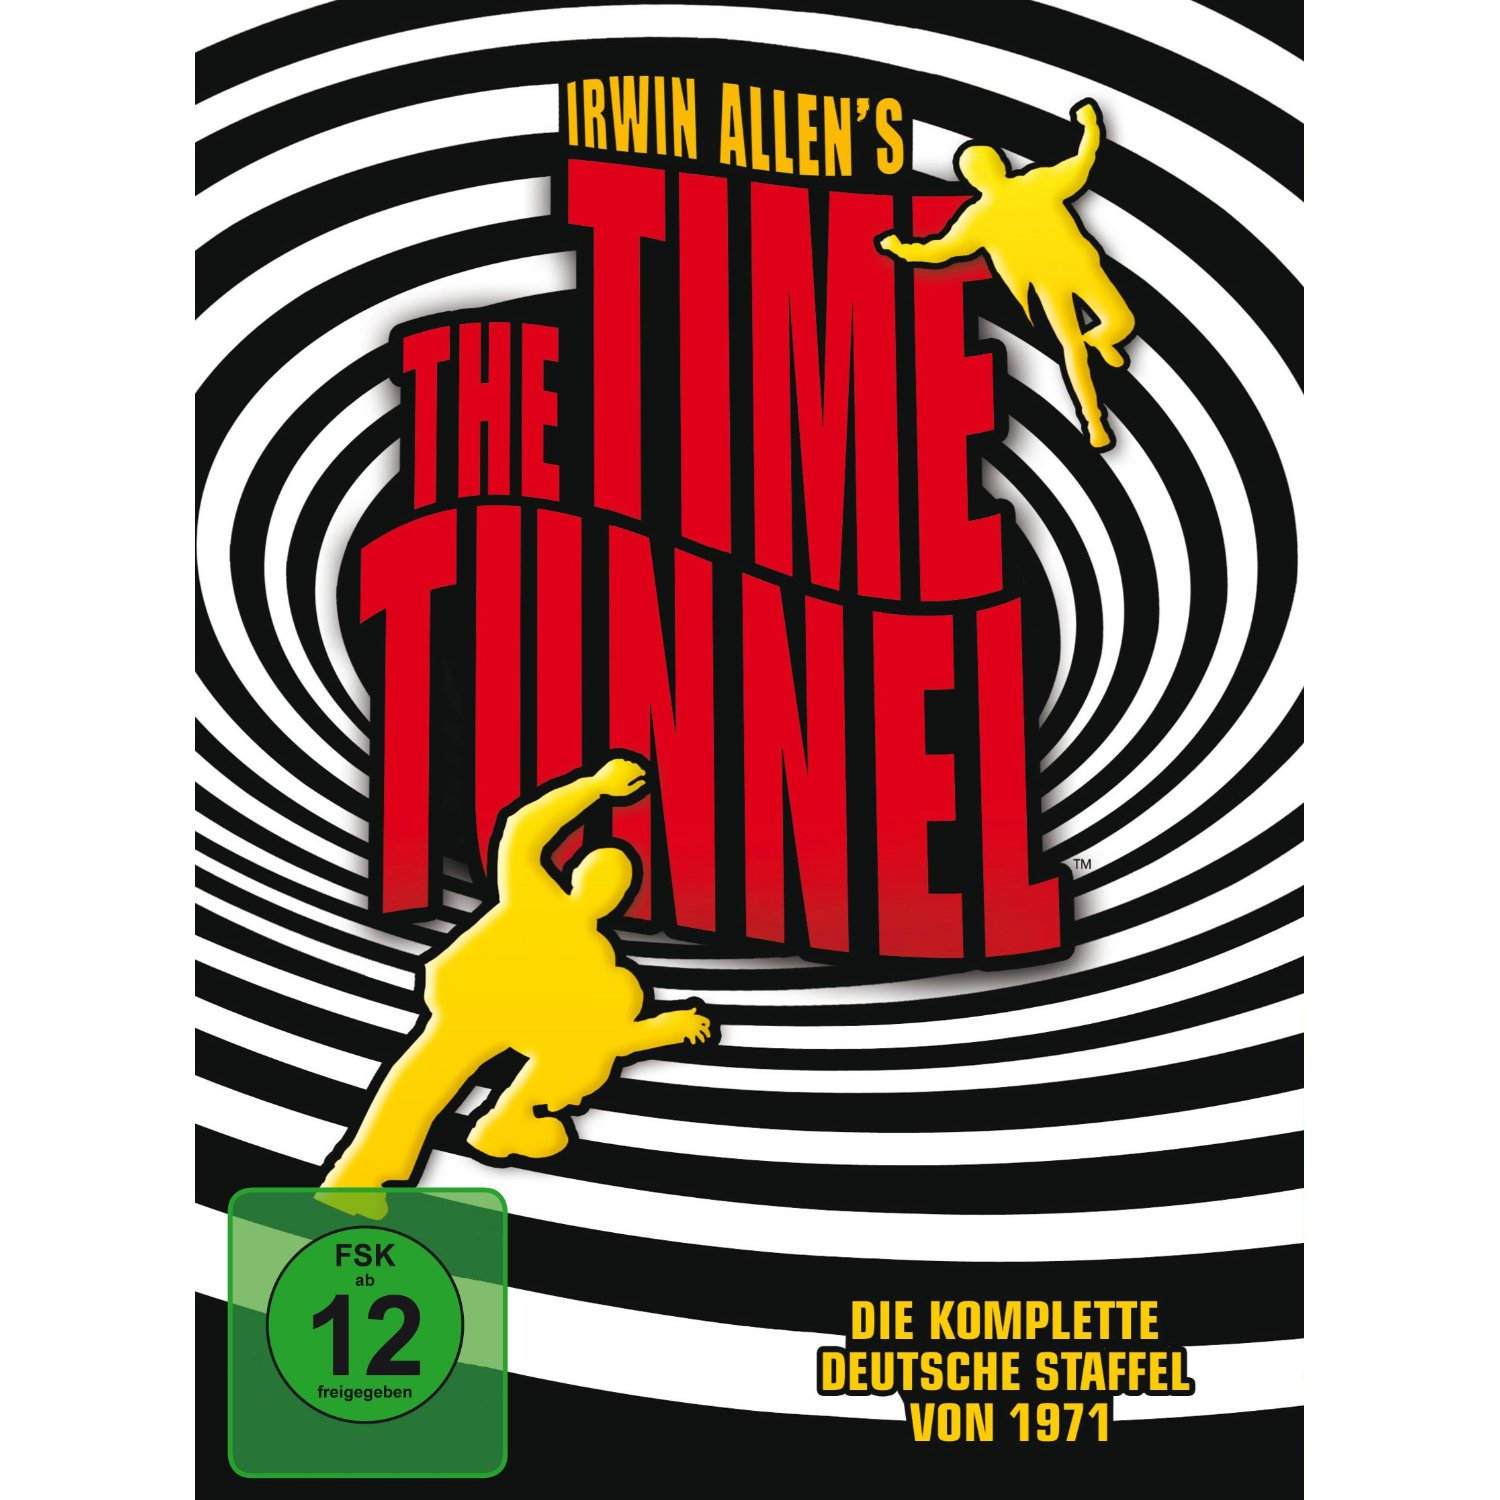 The time tunnel clipart picture royalty free stock The Time Tunnel – Wortraub picture royalty free stock